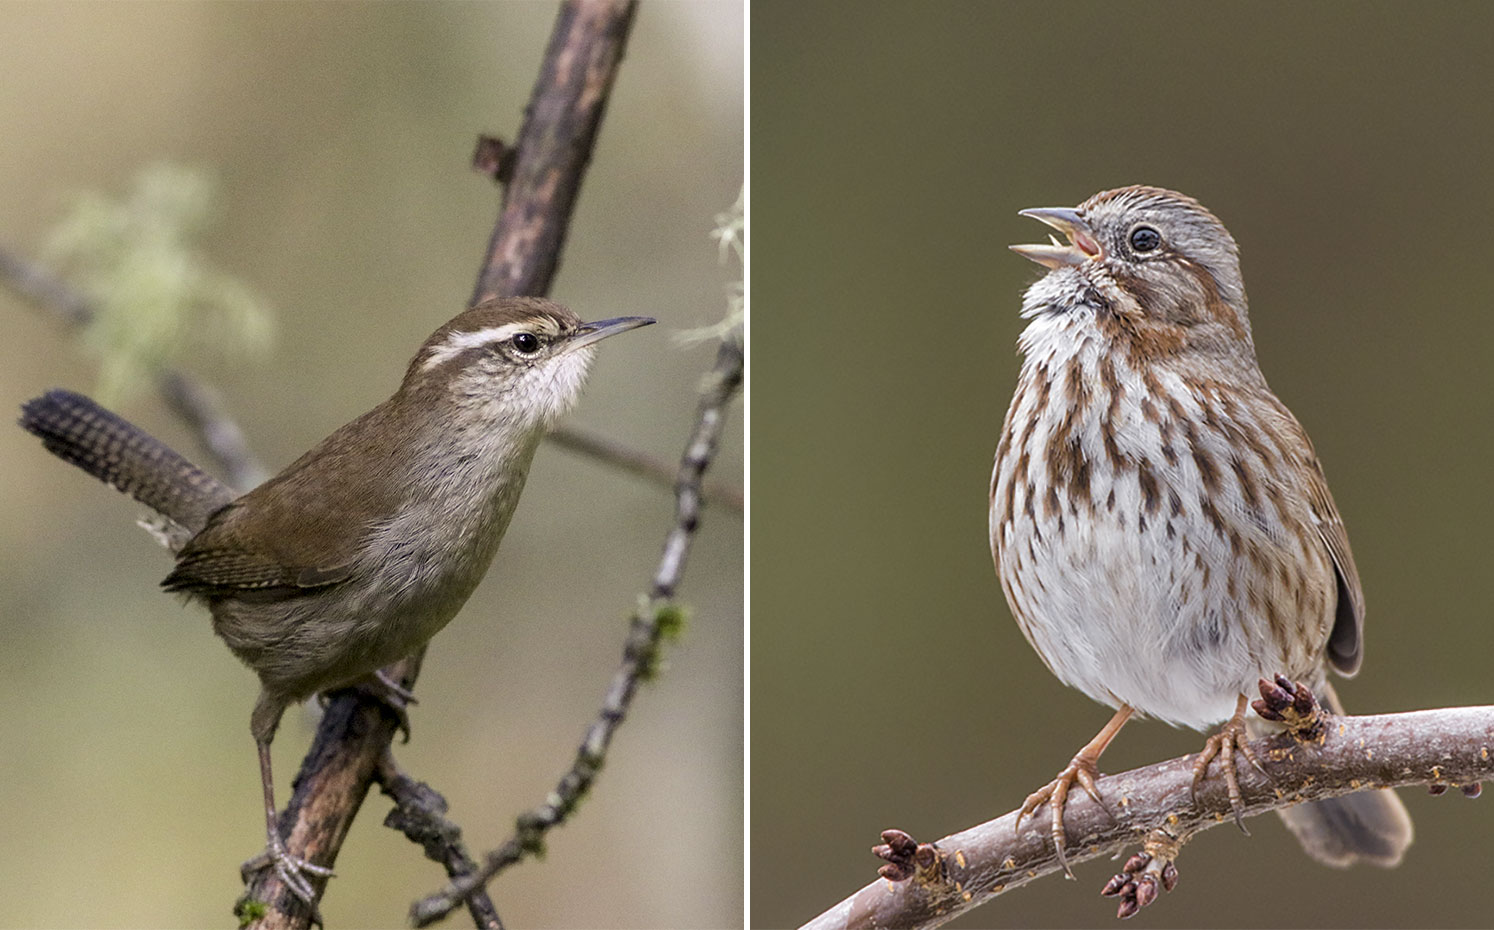 From left: Bewick's Wren. Photo: Susan Holtz/Audubon Photography Awards; Song Sparrow. Photo: Christine Haines/Great Backyard Bird Count